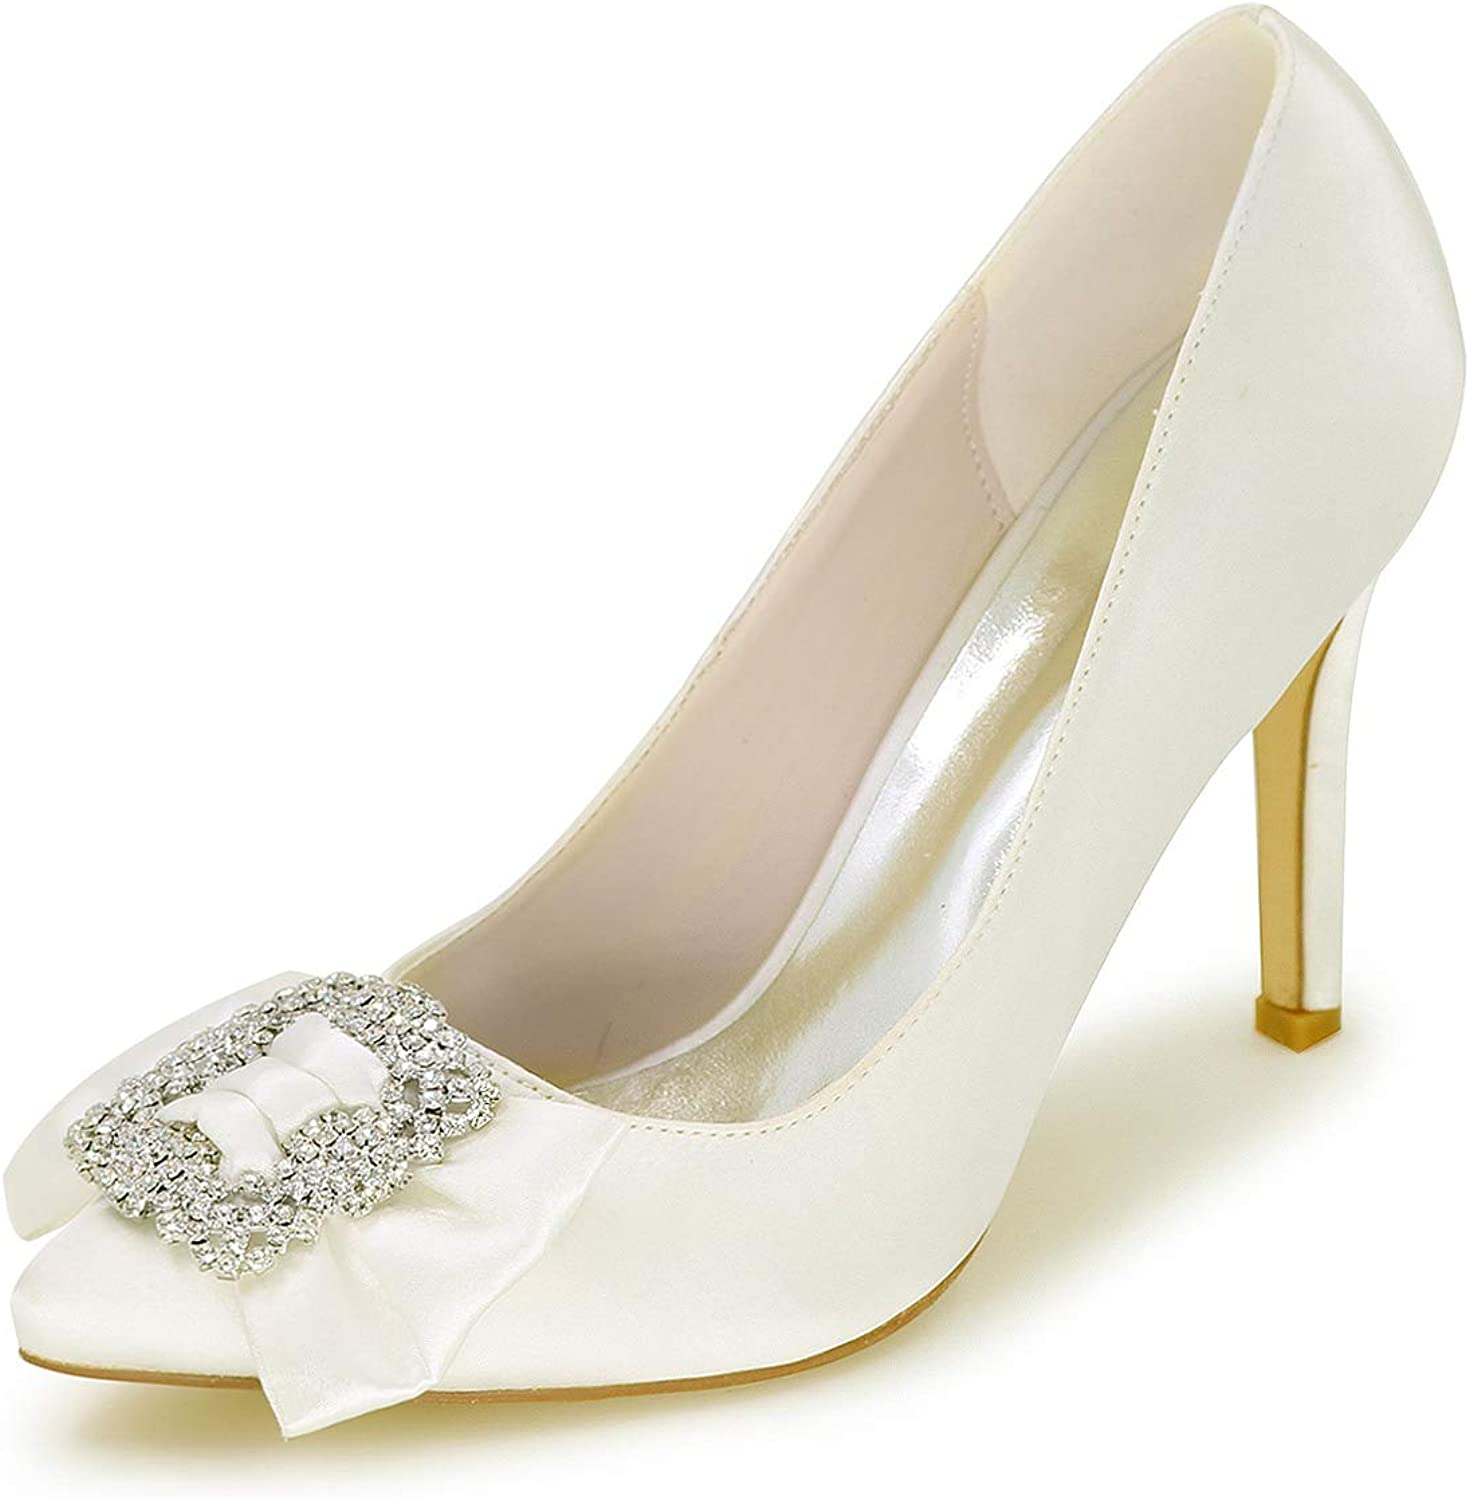 Fanciest Women's Pointed Toe Pumps Heels Sandals Satin Wedding Bridal shoes White 0608-27